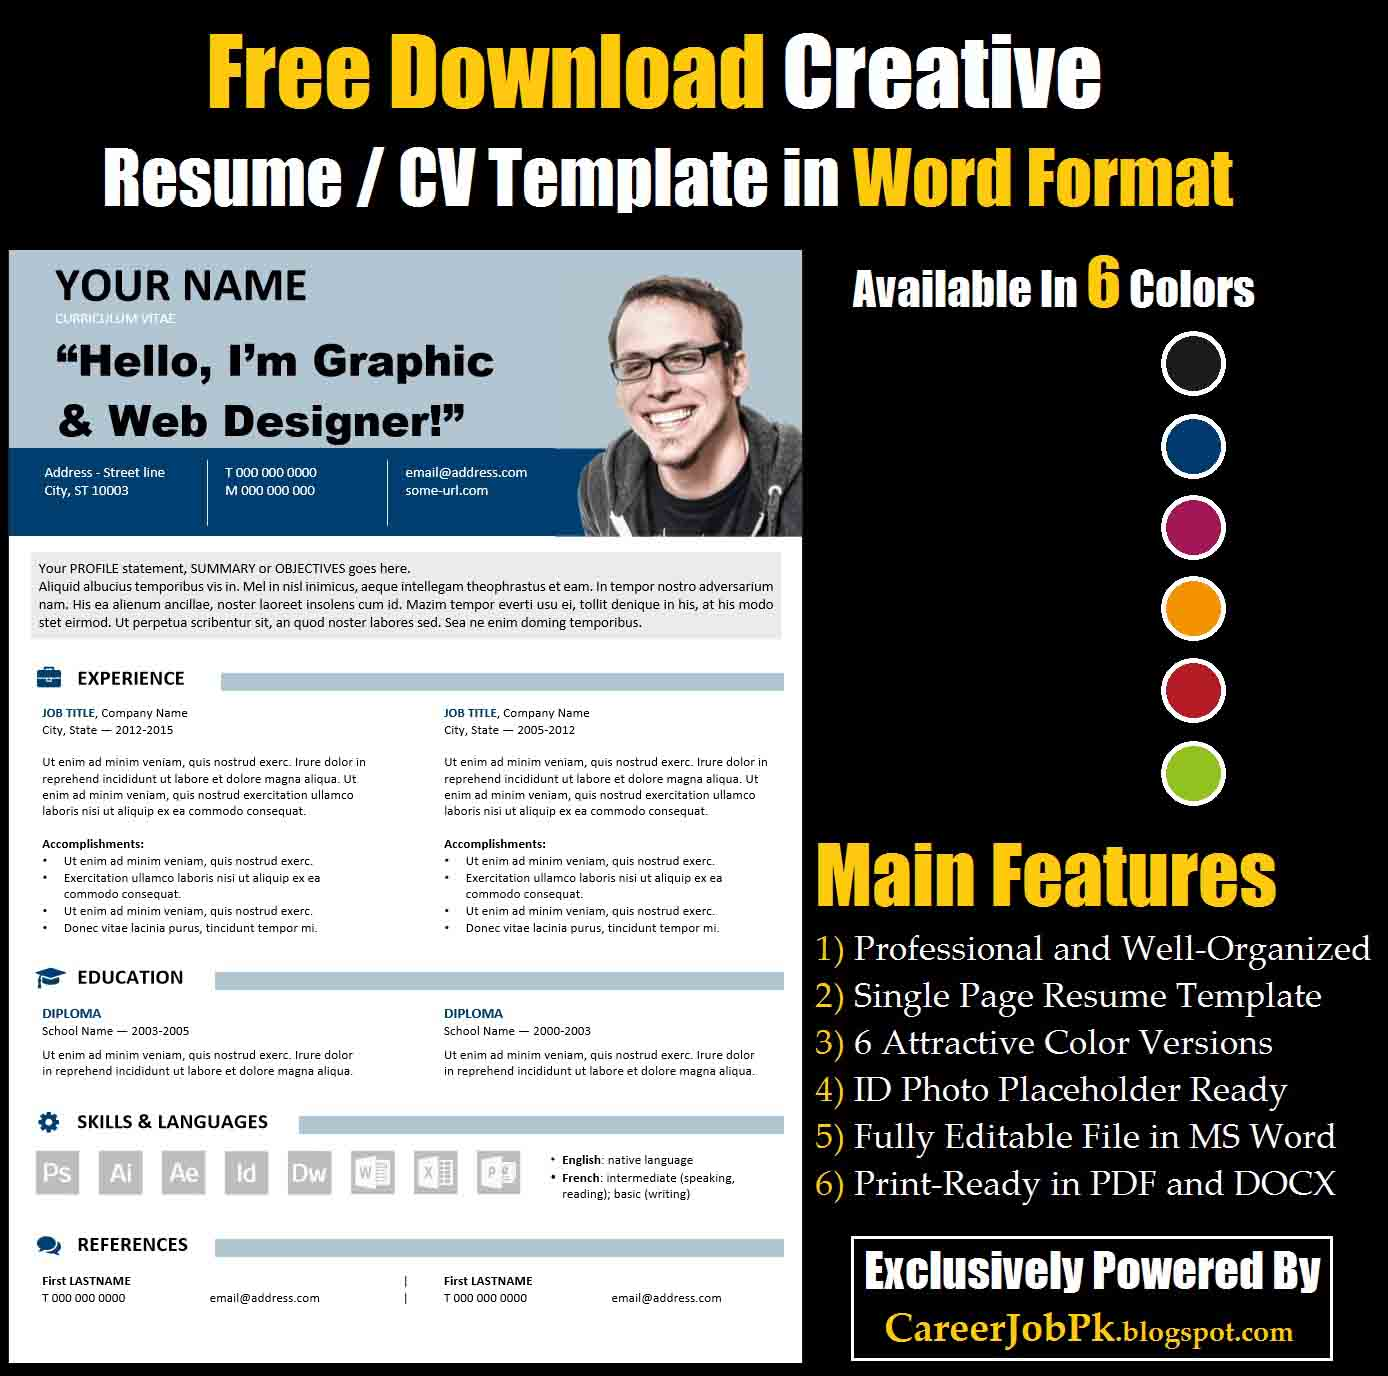 Resume format download in ms word microsoft word diary template to free download editable resume cv template in ms word format free download creative resume cv templates yelopaper Images